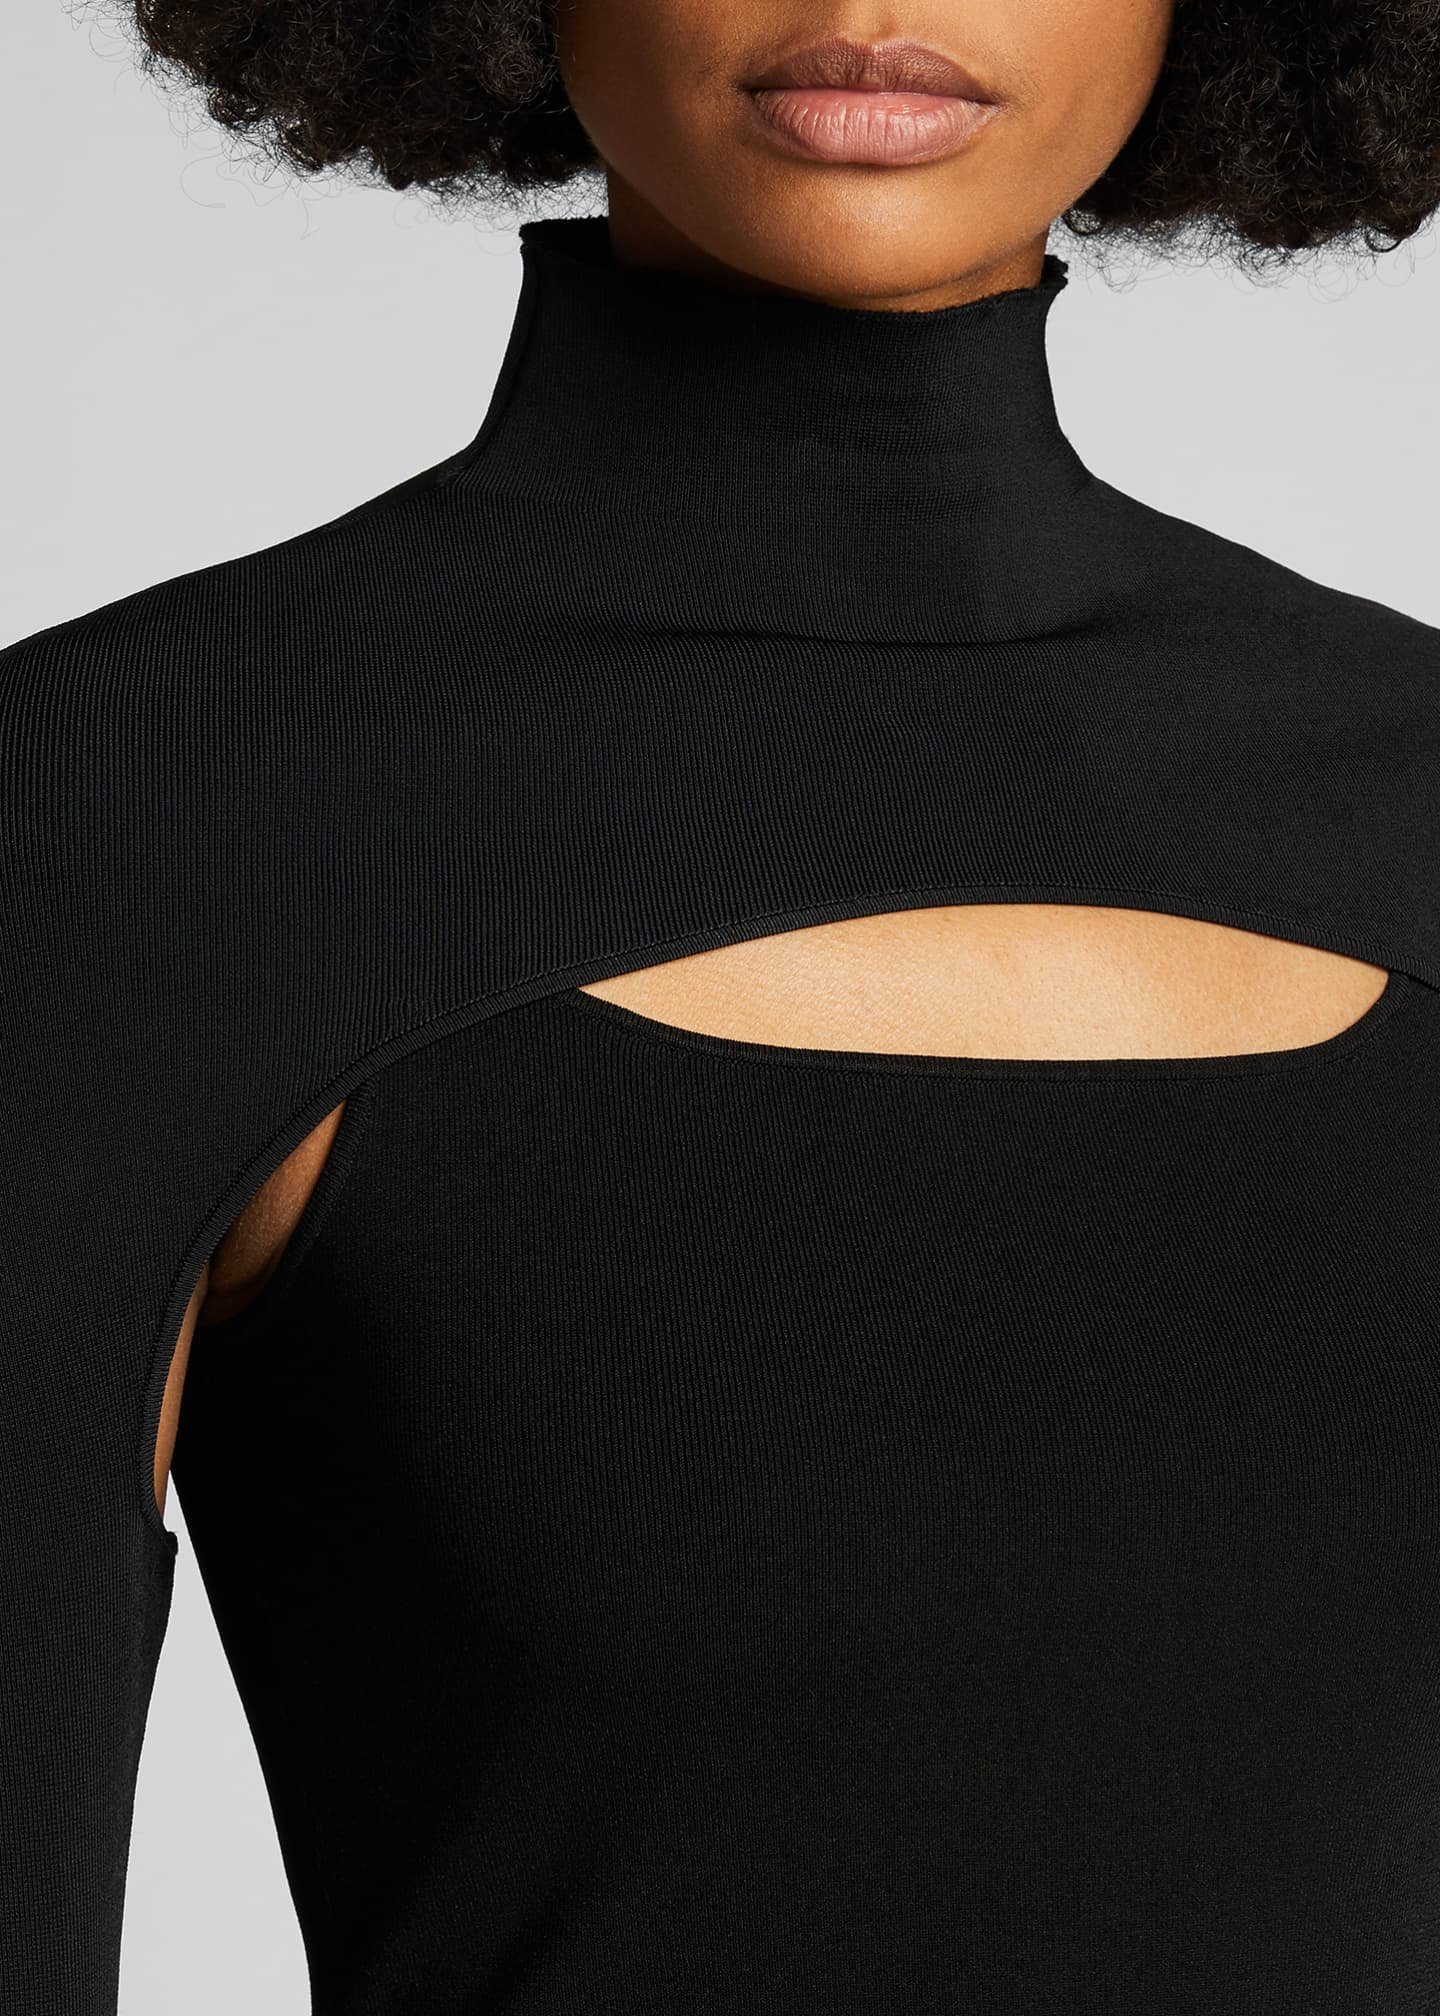 Image 4 of 5: Cutout Turtleneck Sweater